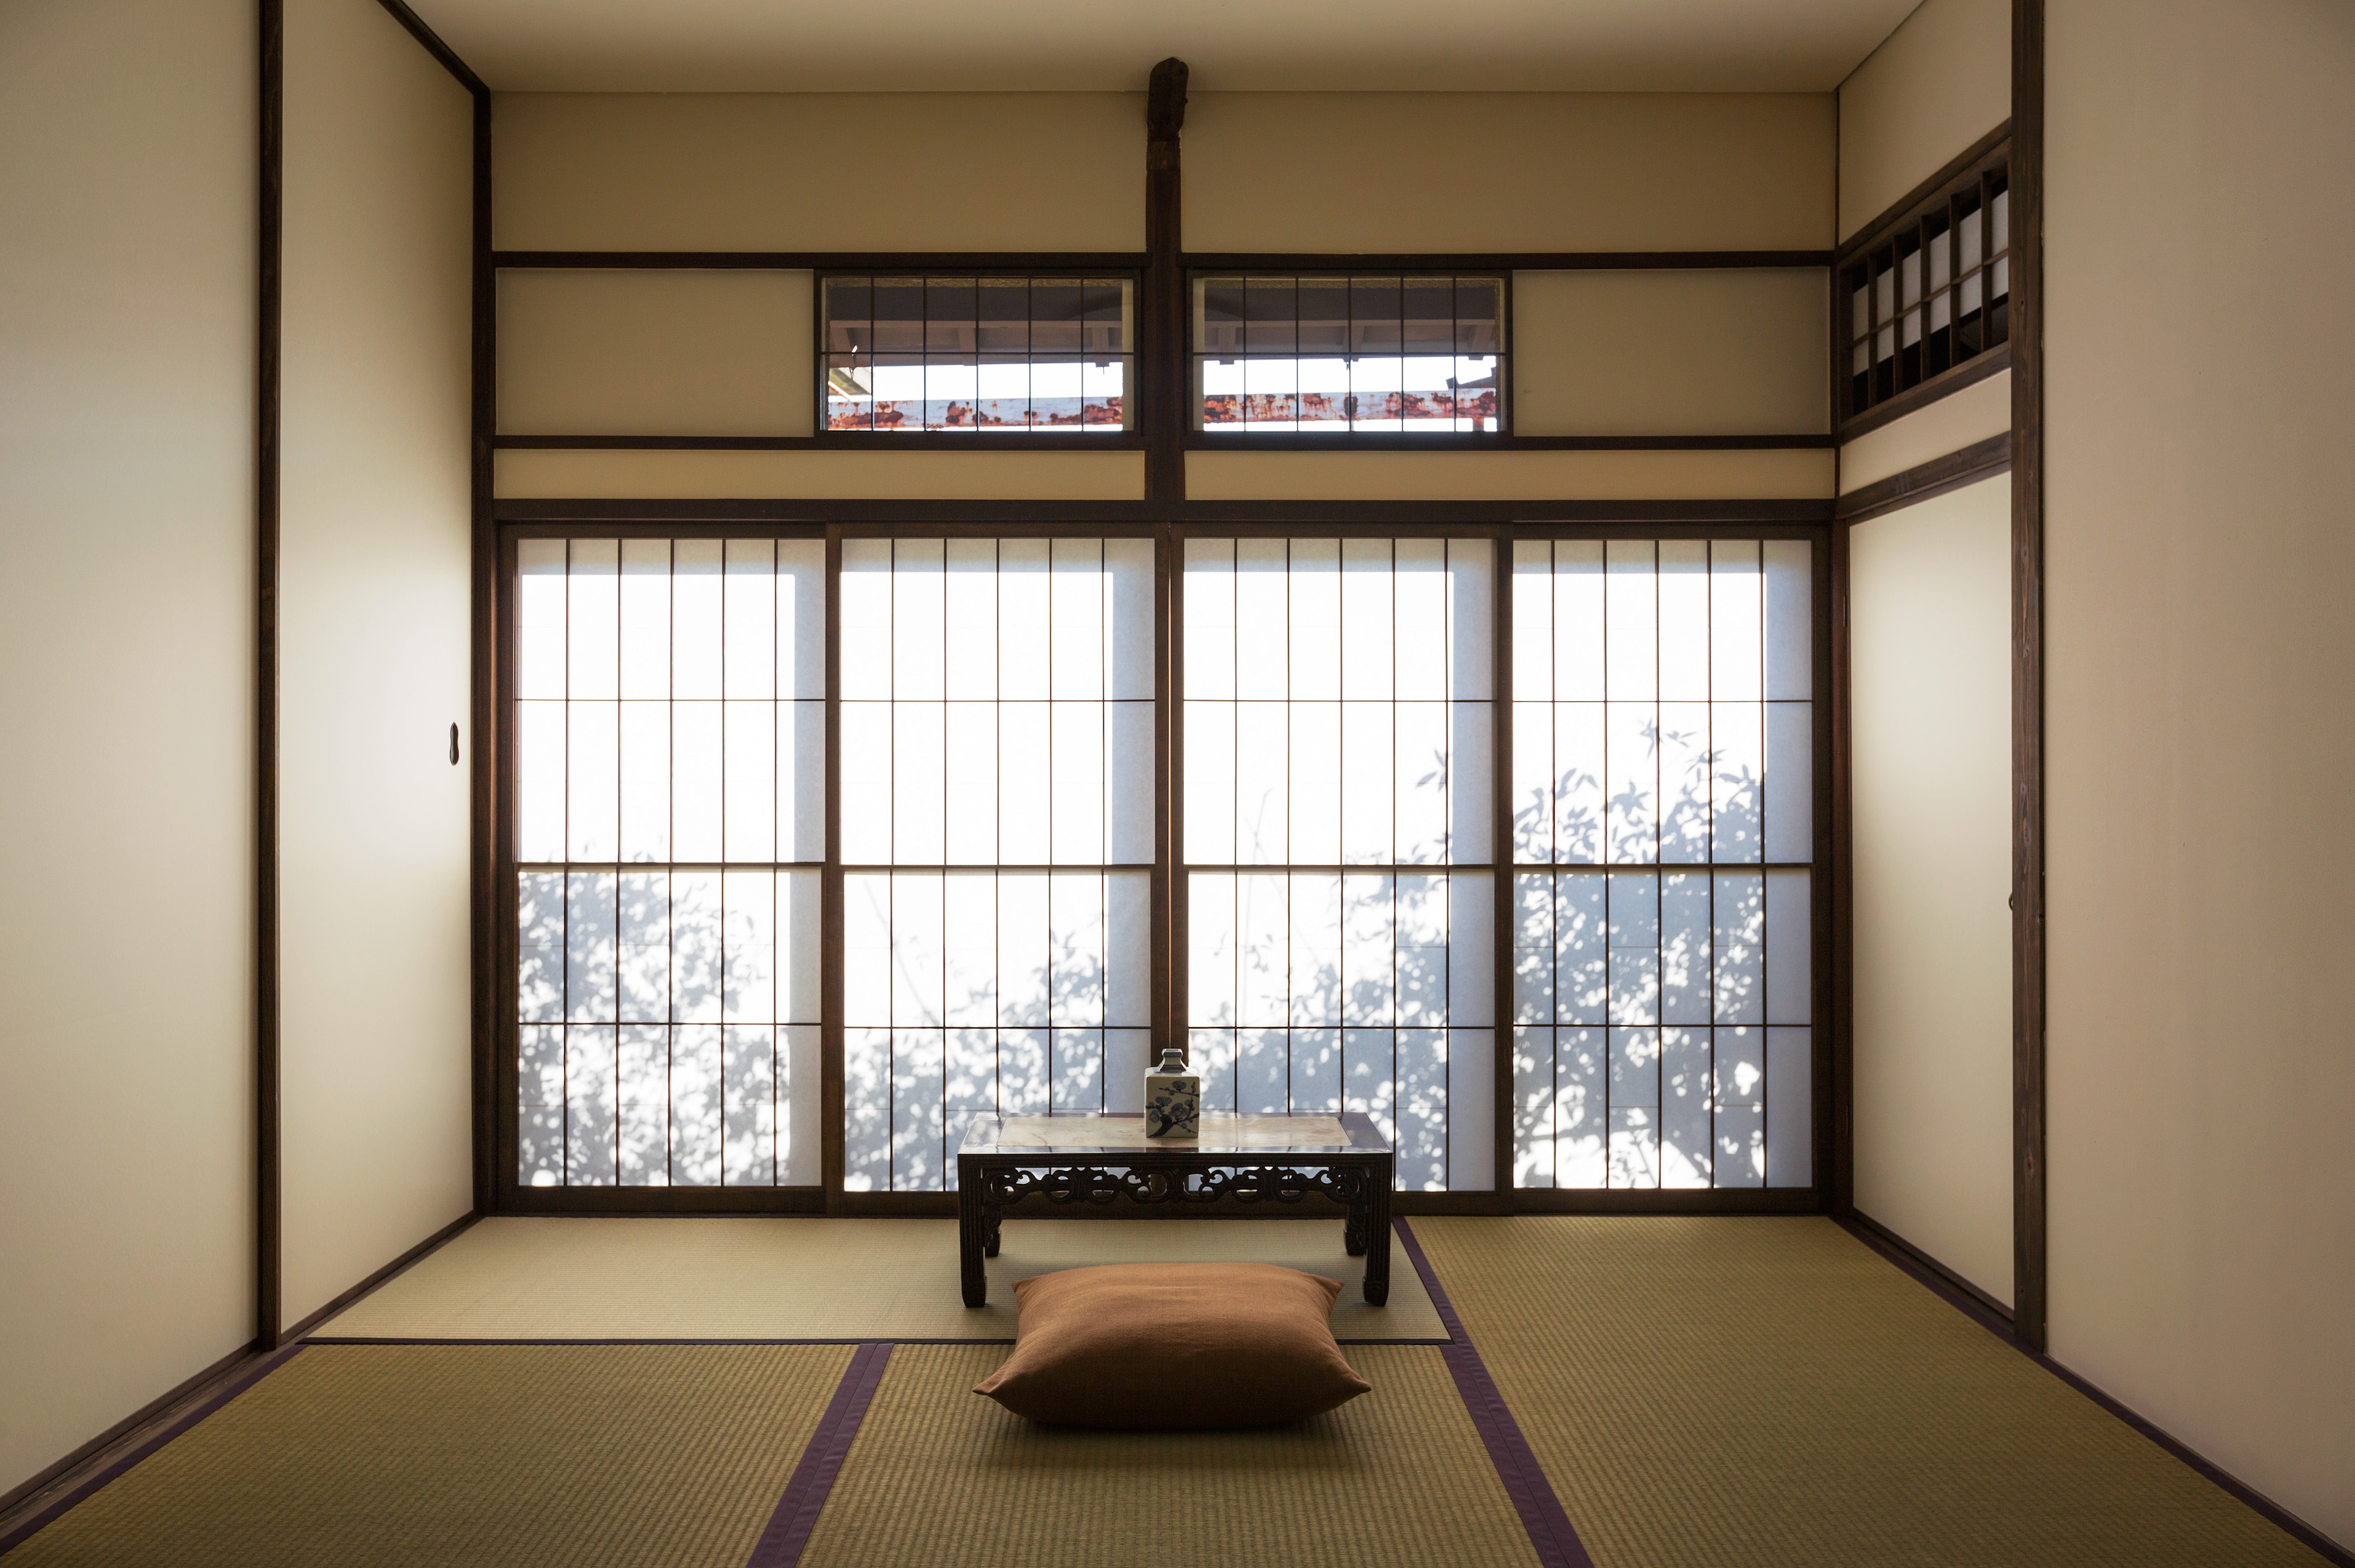 6 tatami-mat Japanese room with a stunning view of the hedgerows illuminated by sunrise.